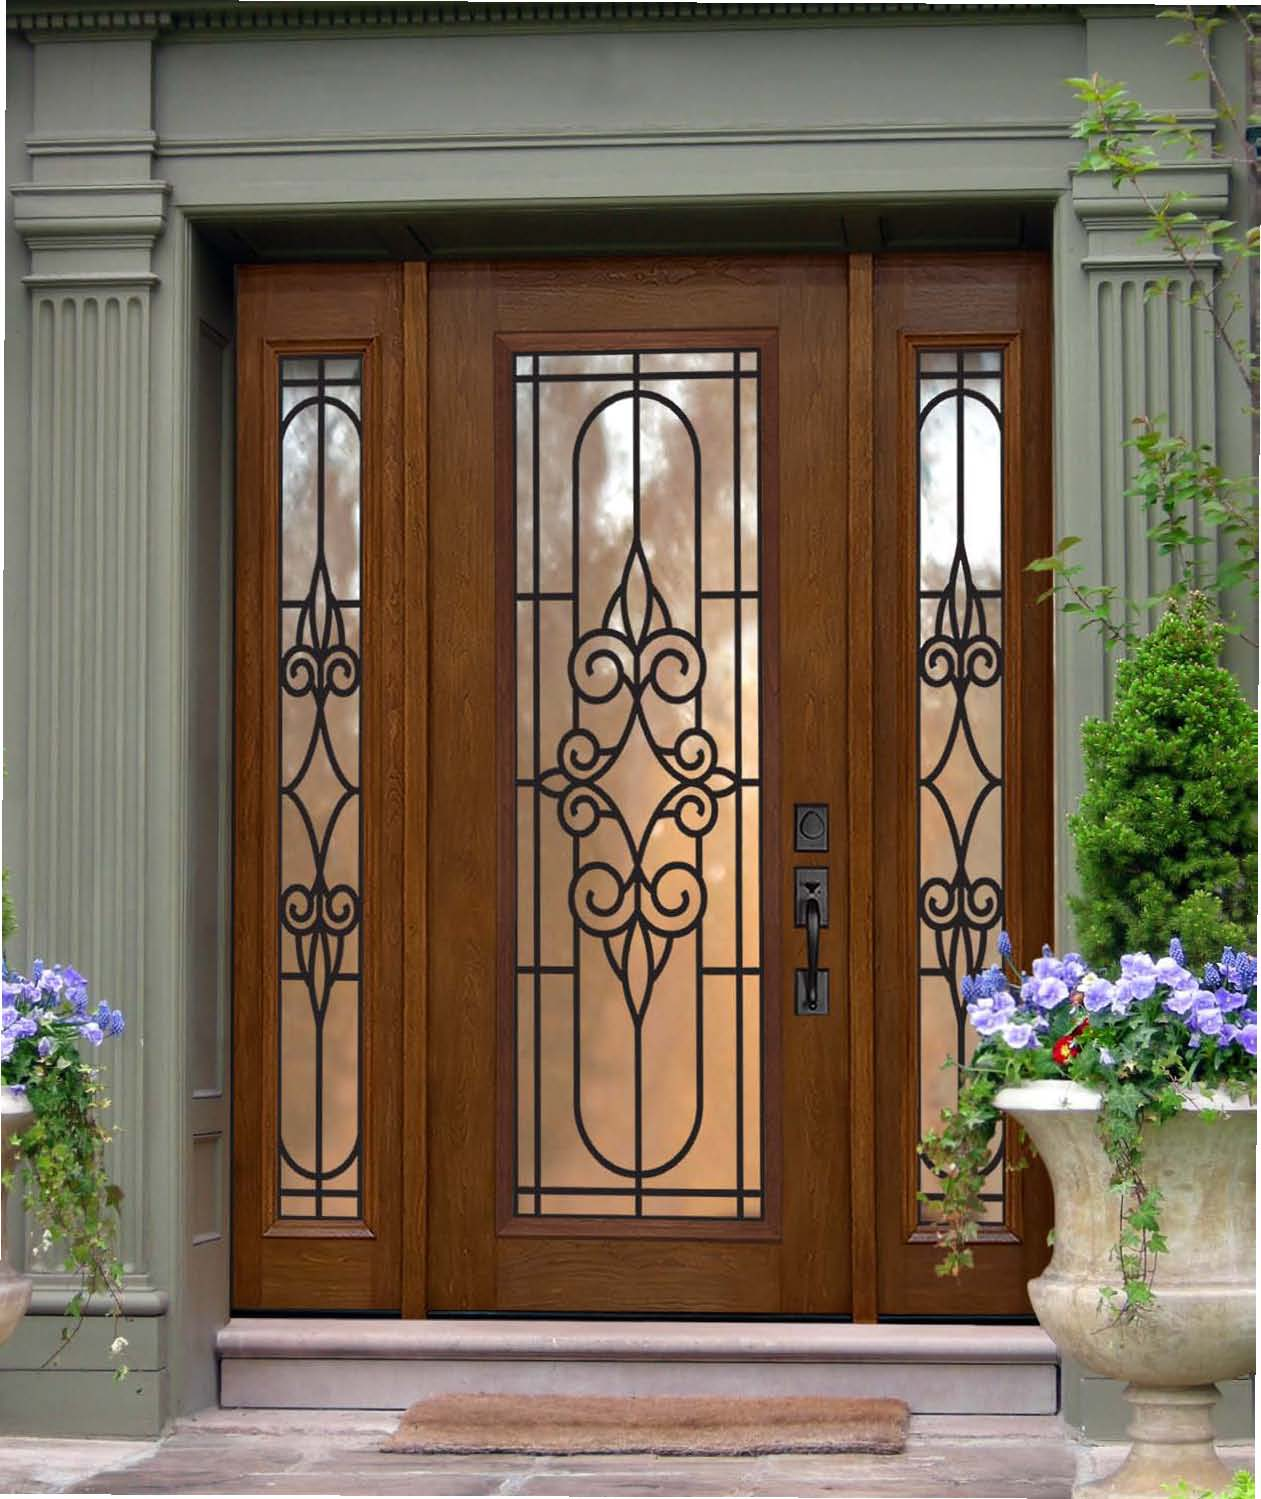 US Door And More Inc.: Make Your Entry Door Trendy With